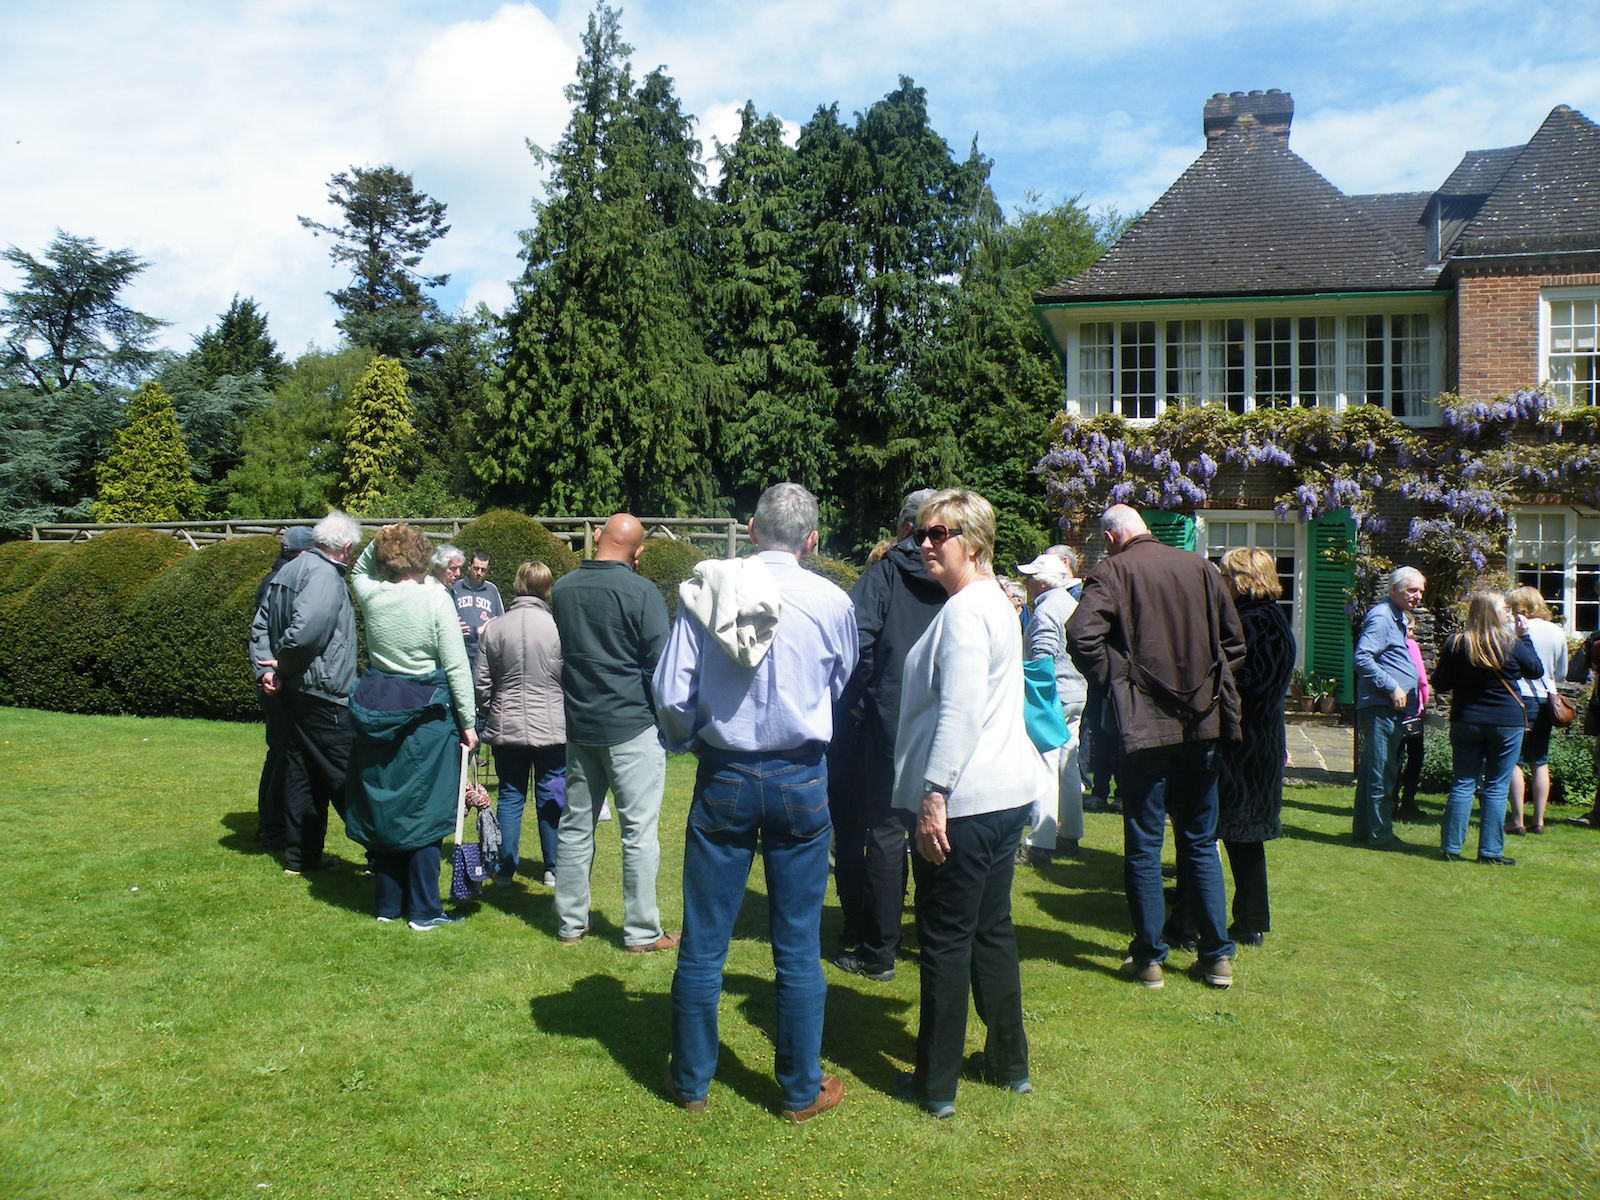 On the Croquet Lawn